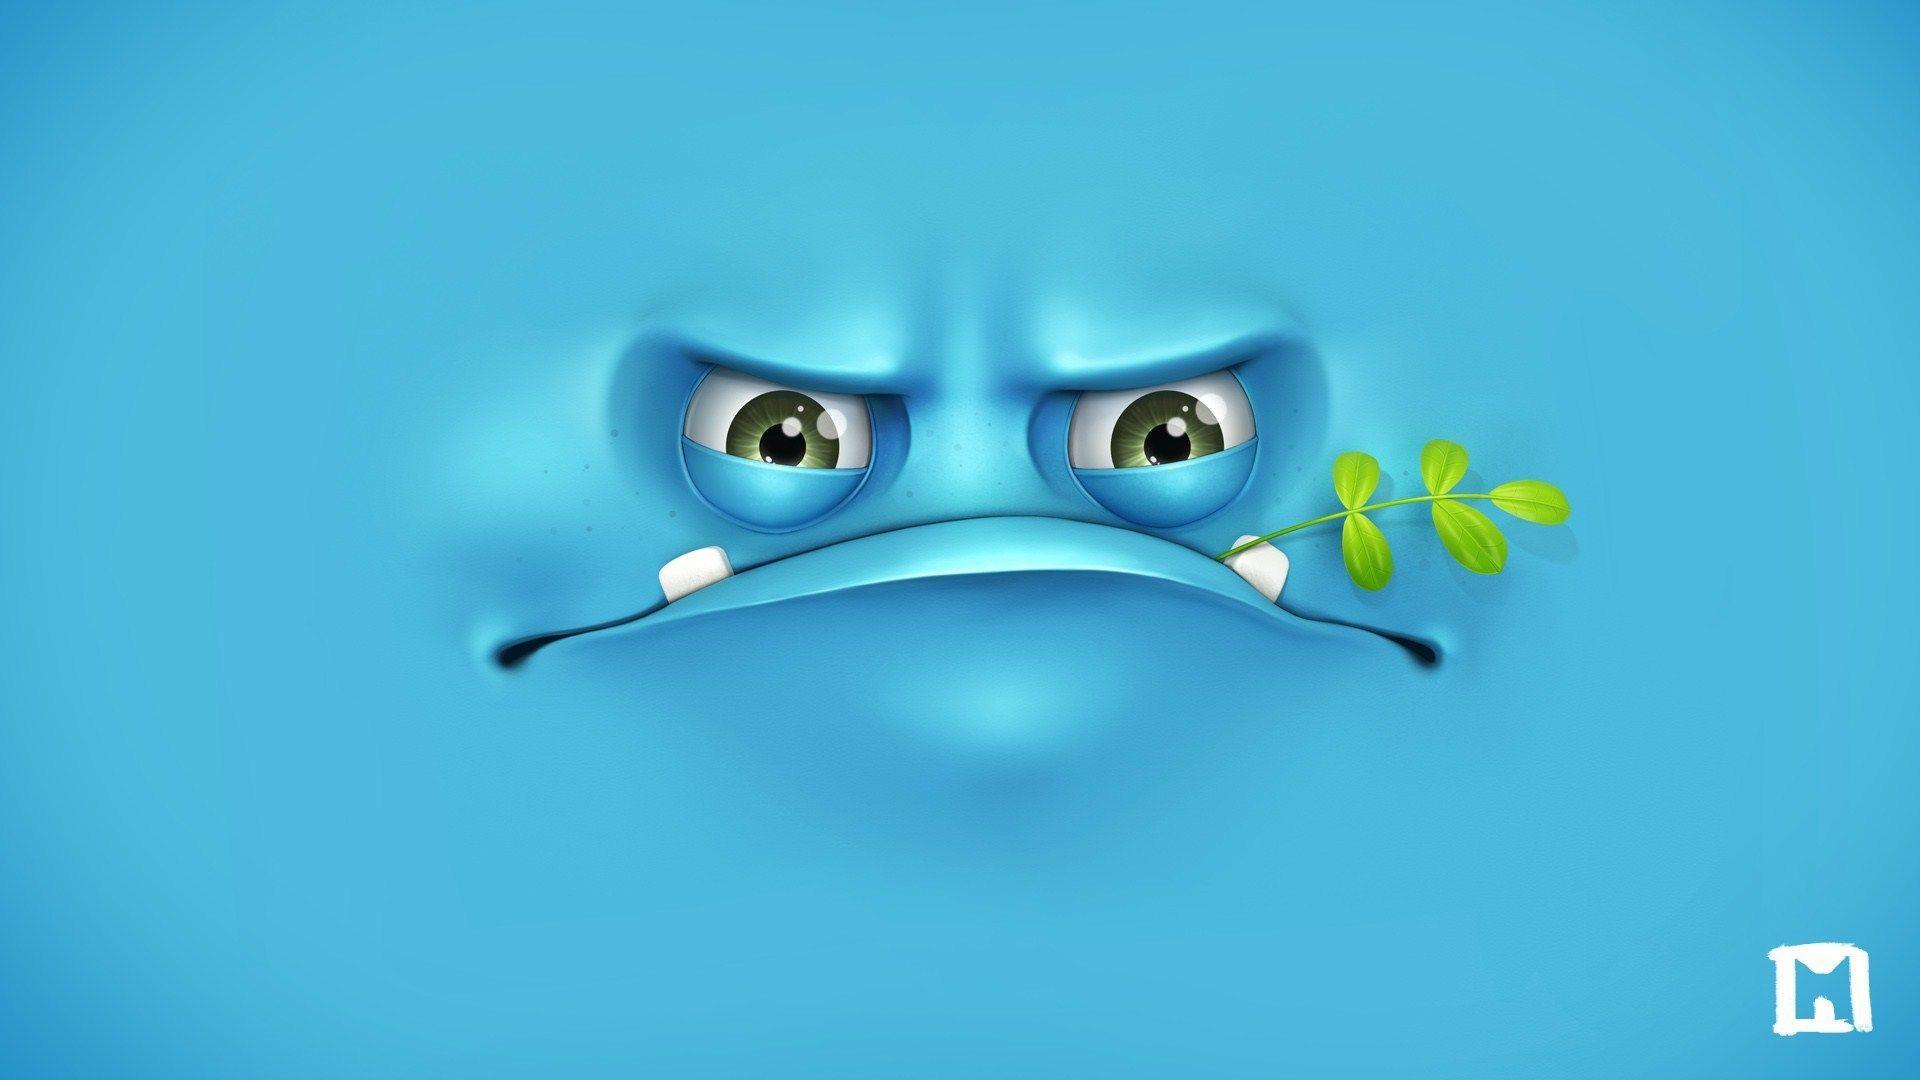 Funny Backgrounds Wallpapers 1920x1080